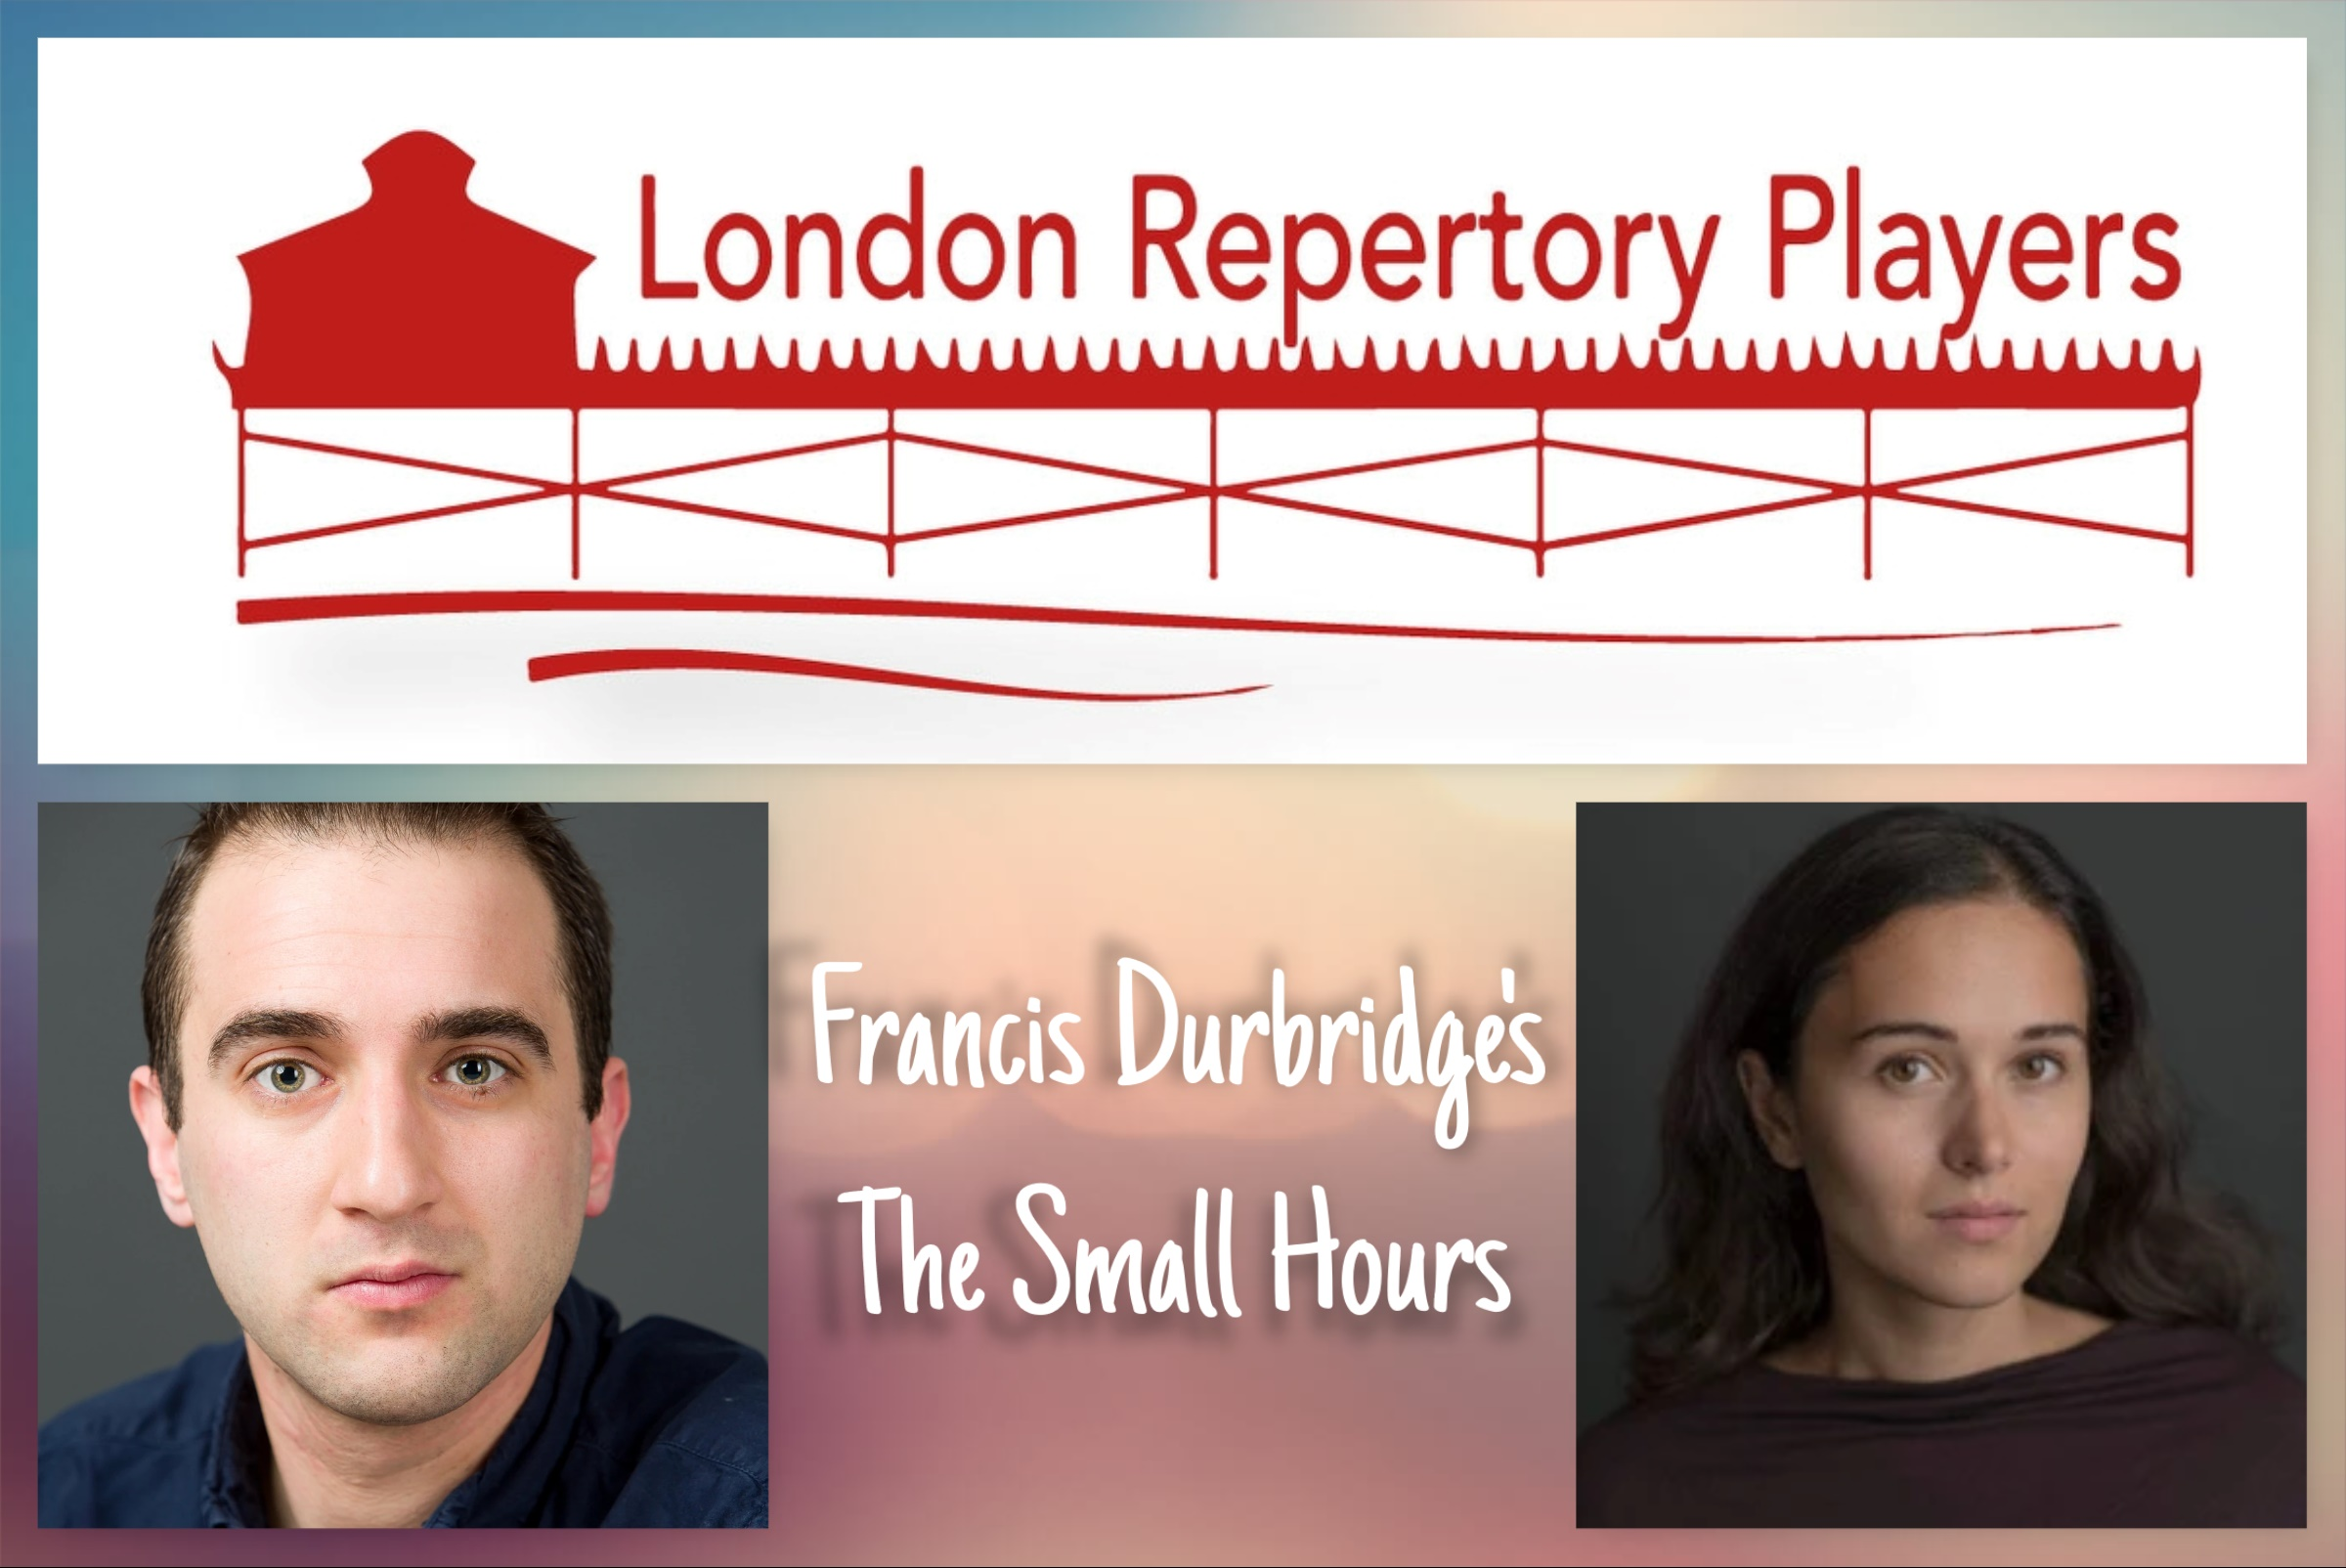 Francis Durbridge's The Small Hours